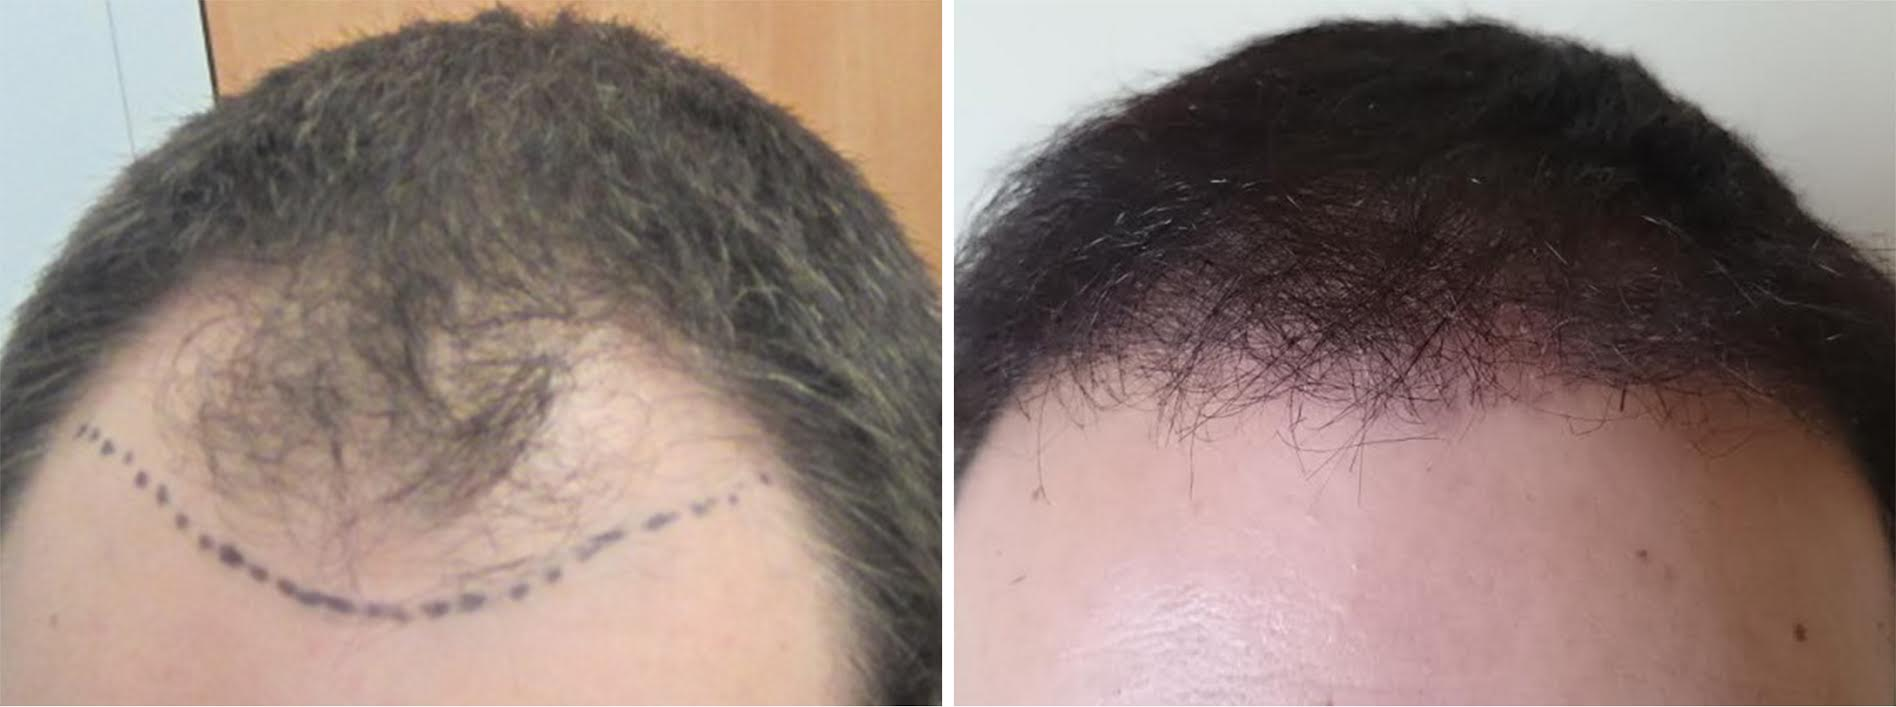 before after hair transplant surgery2